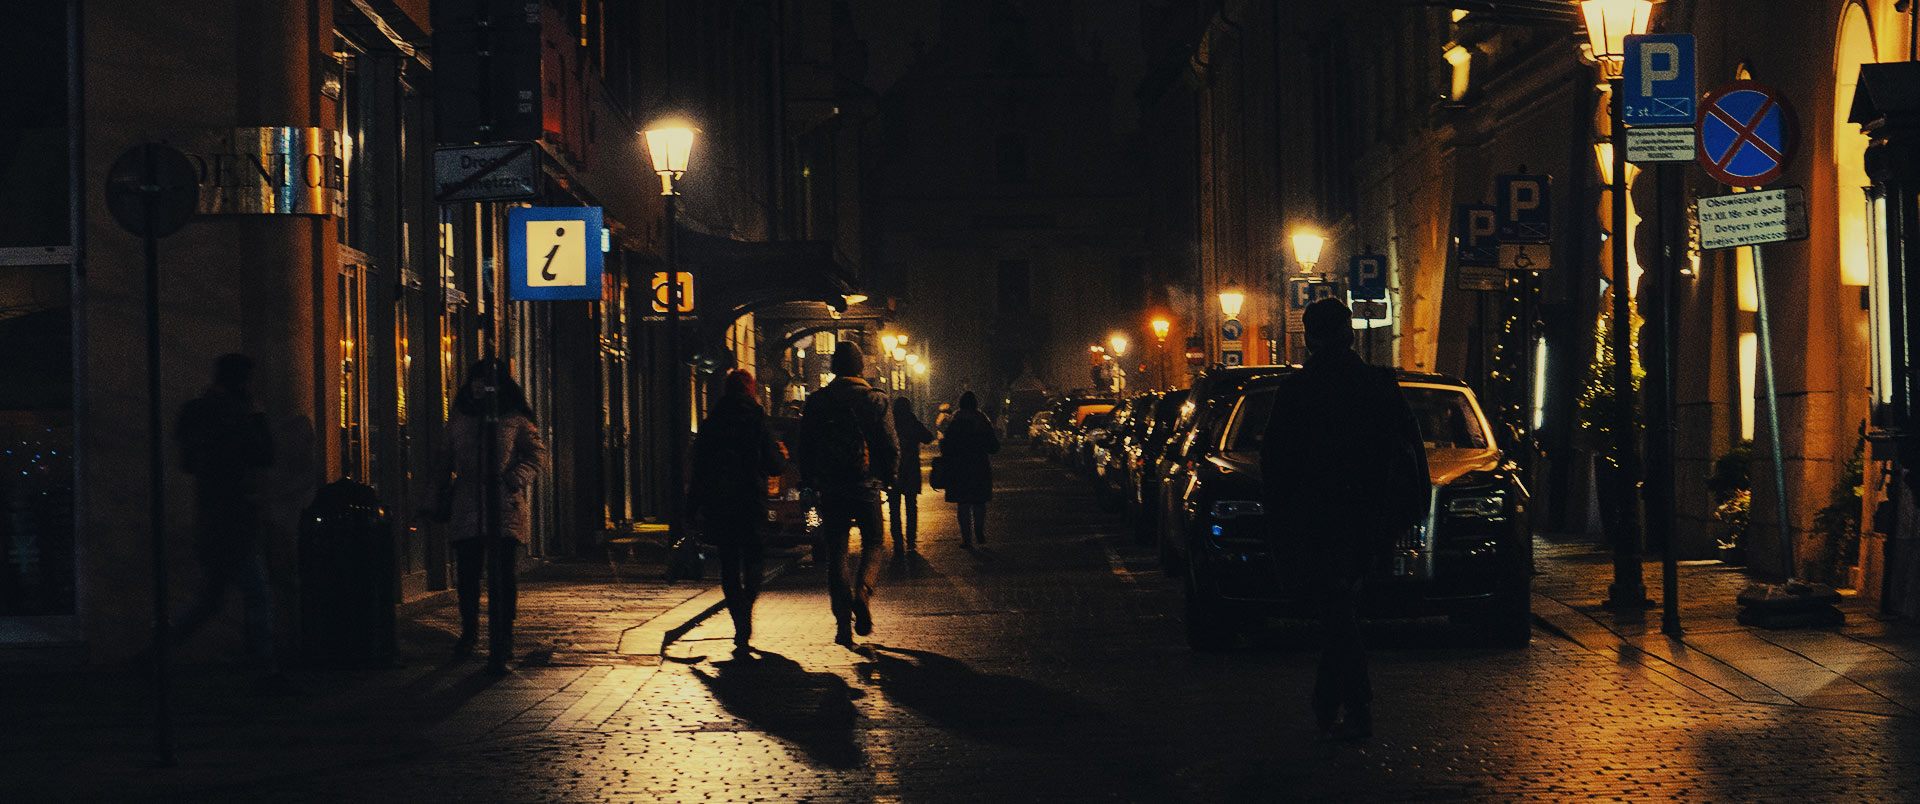 A Street in the Night